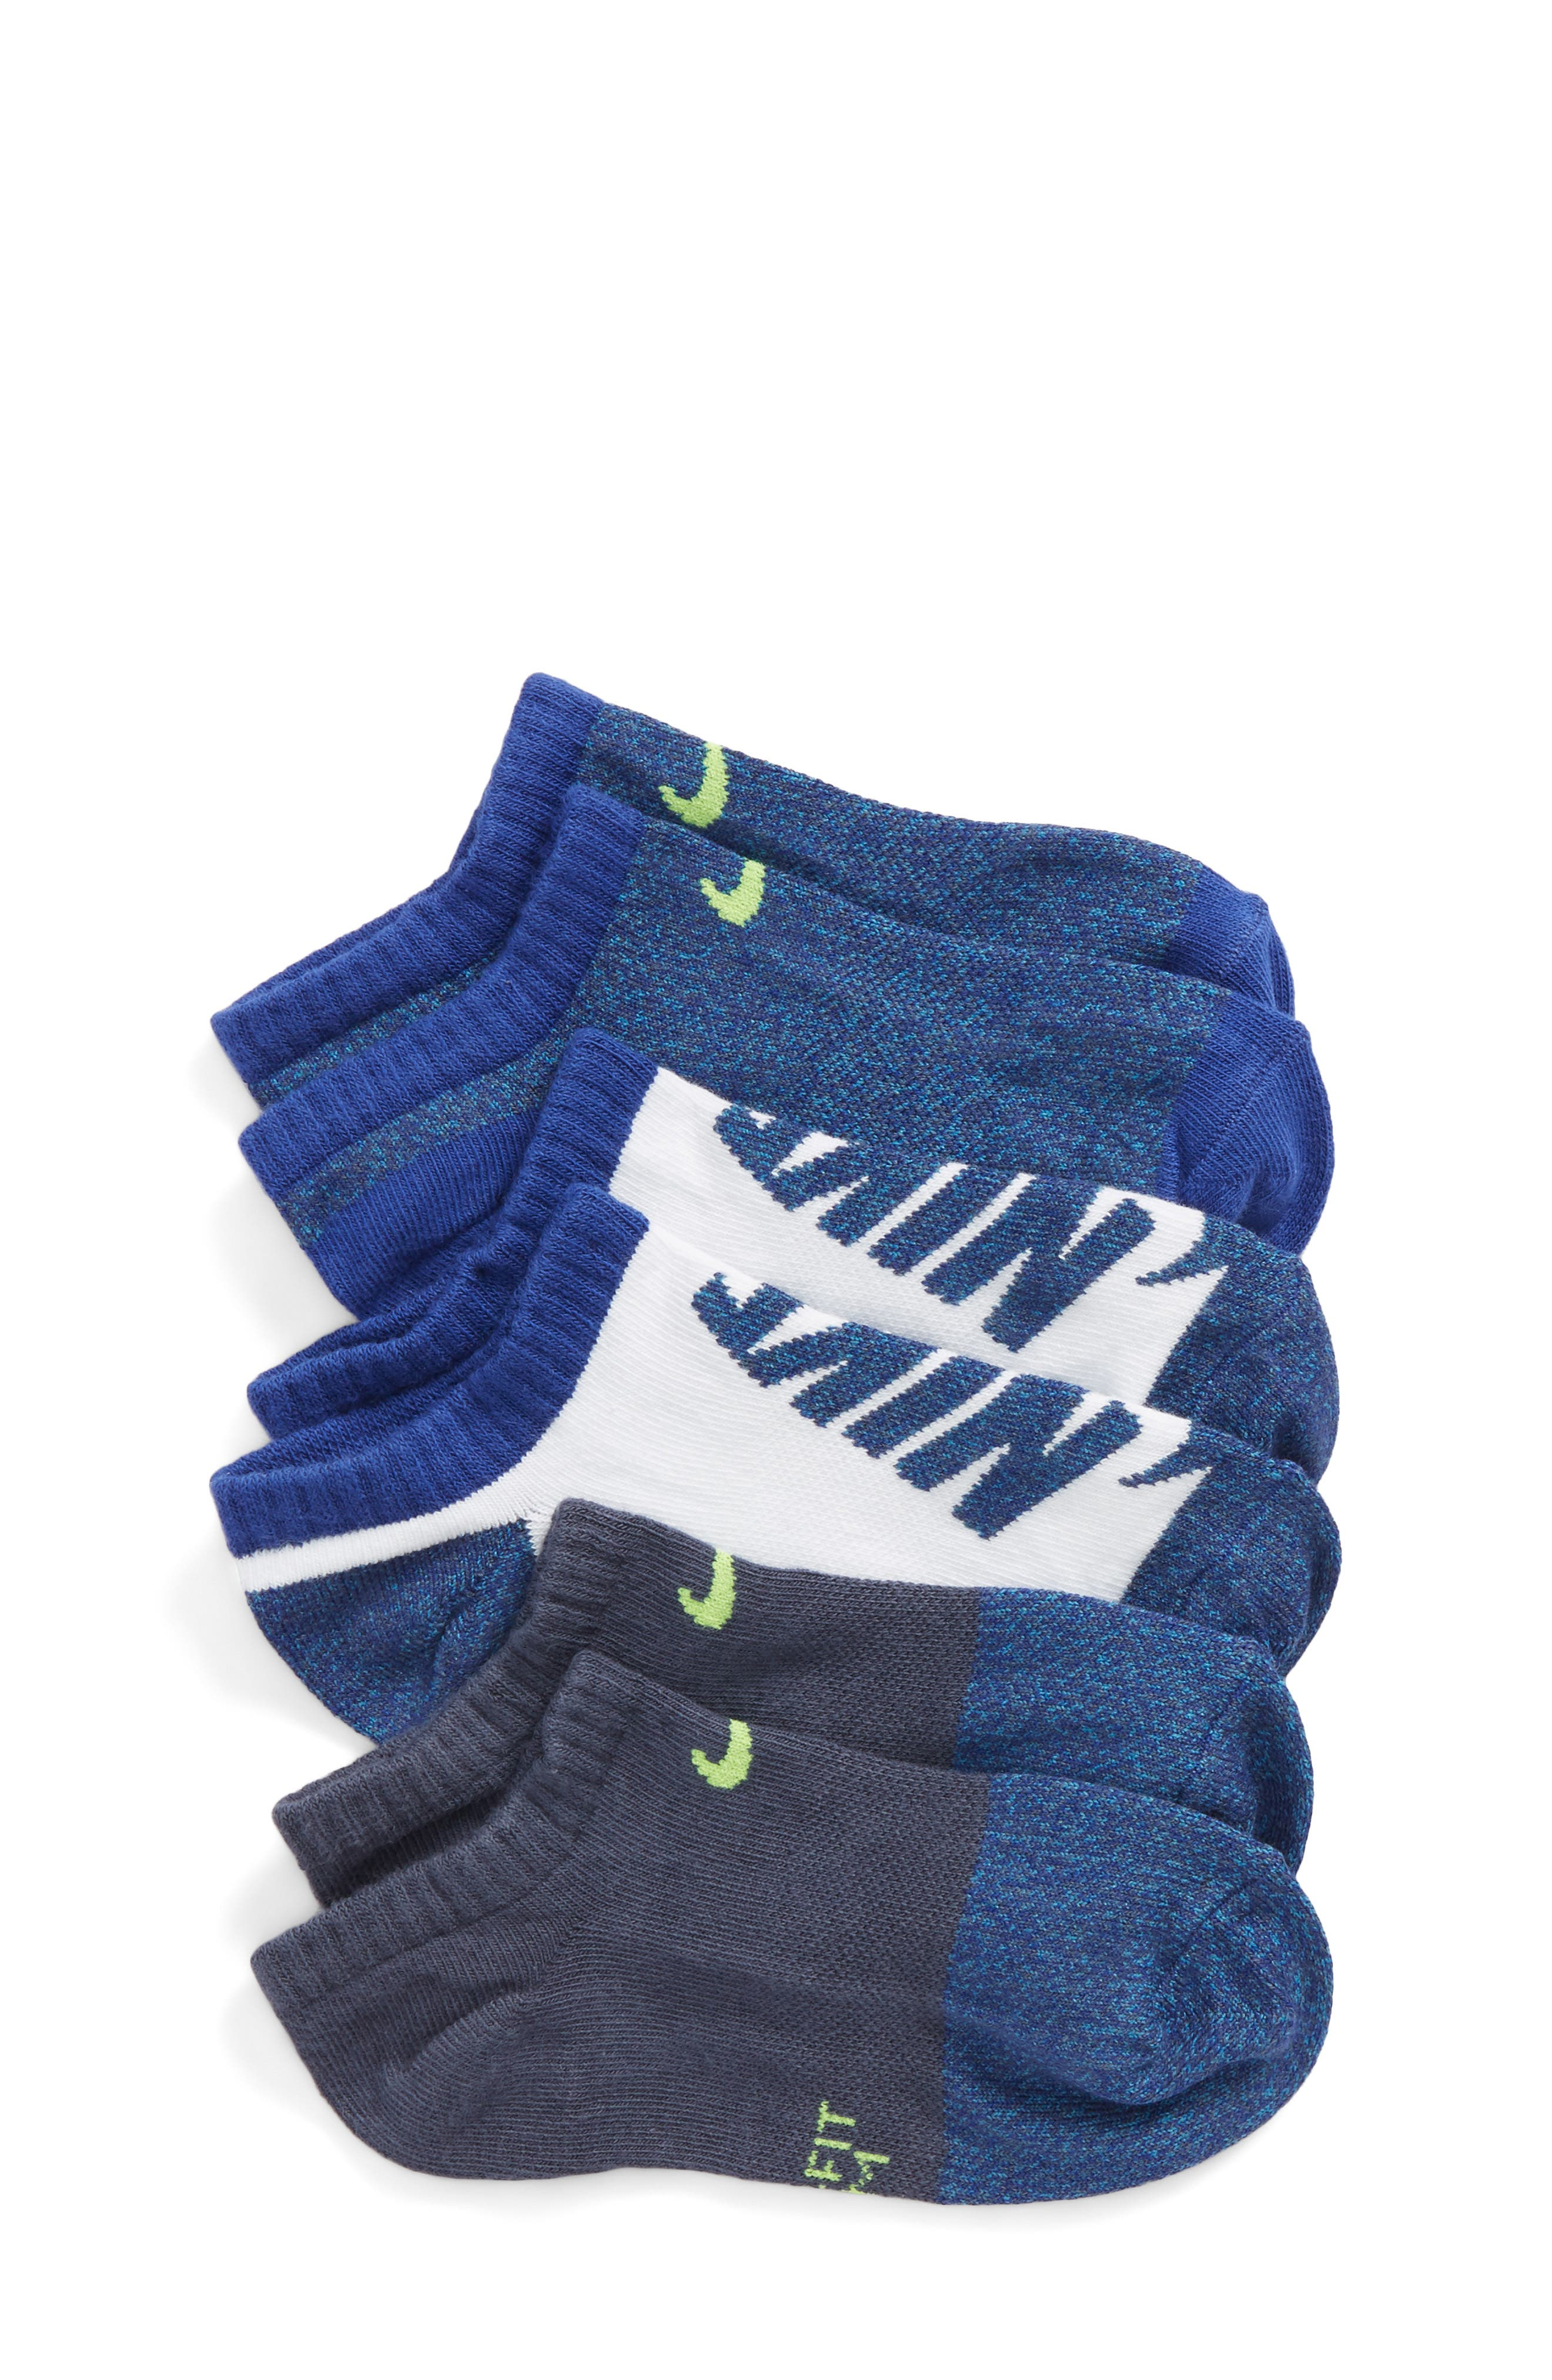 3-Pack Performance Lightweight No-Show Socks,                         Main,                         color,